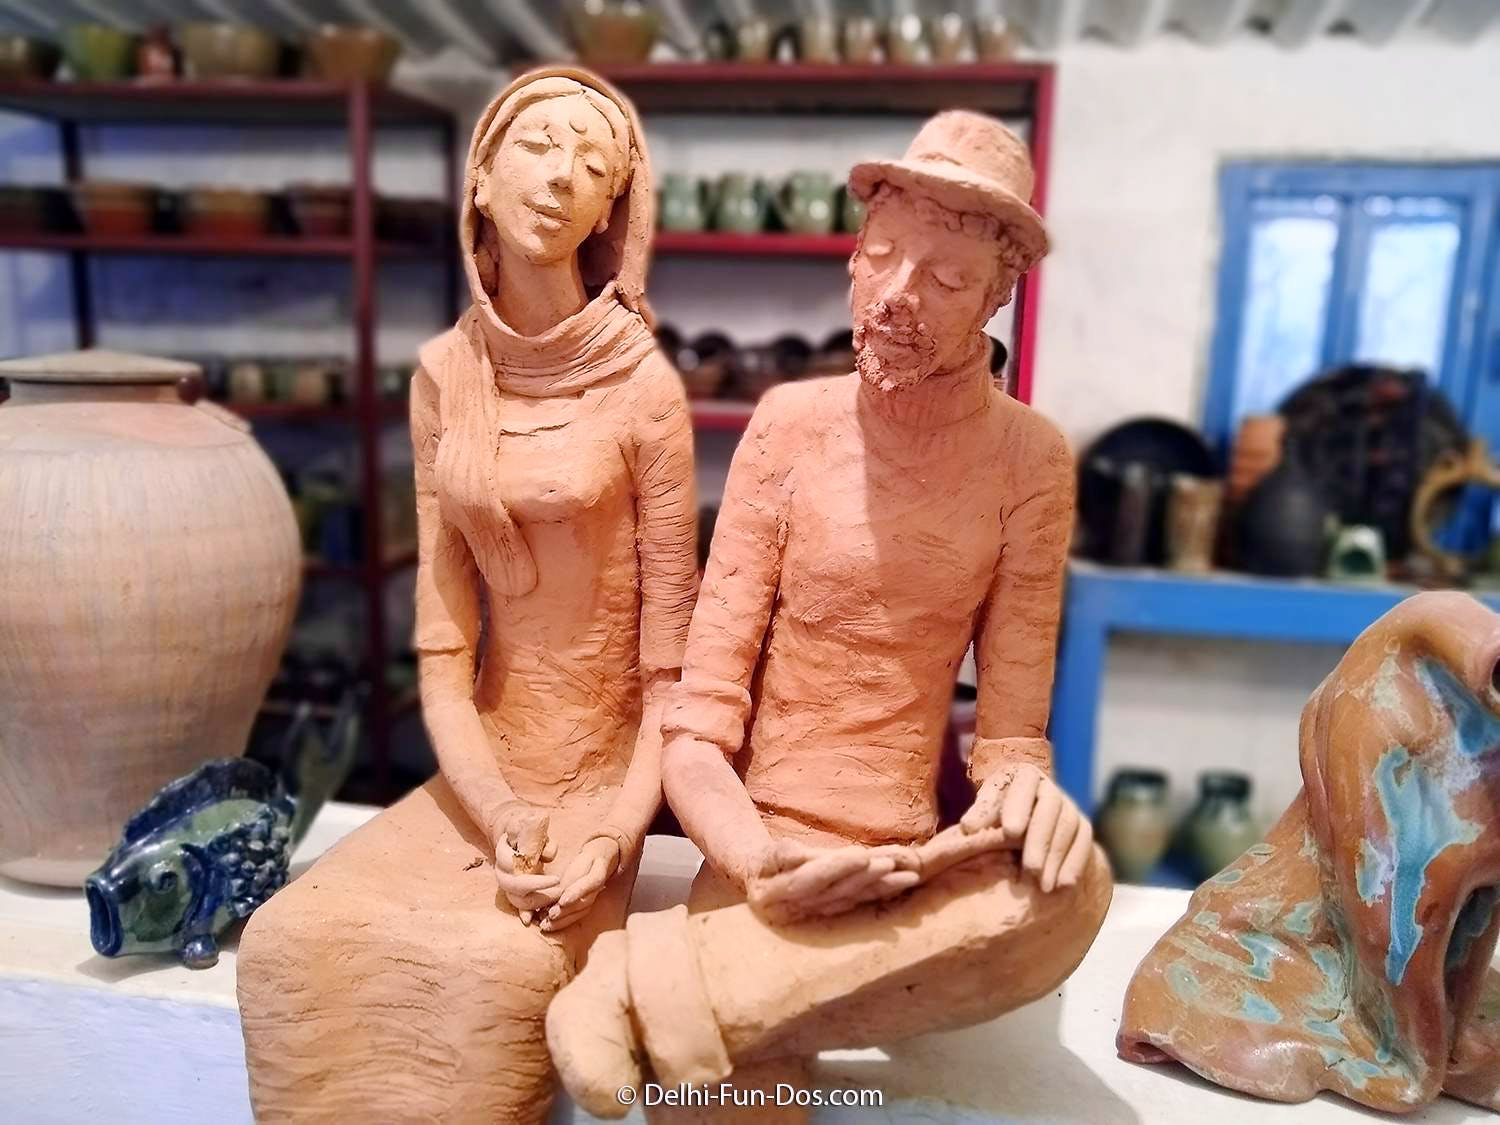 Sculpture,Figurine,Art,Carving,Sculptor,Nativity scene,Chainsaw carving,Statue,Classical sculpture,Ceramic